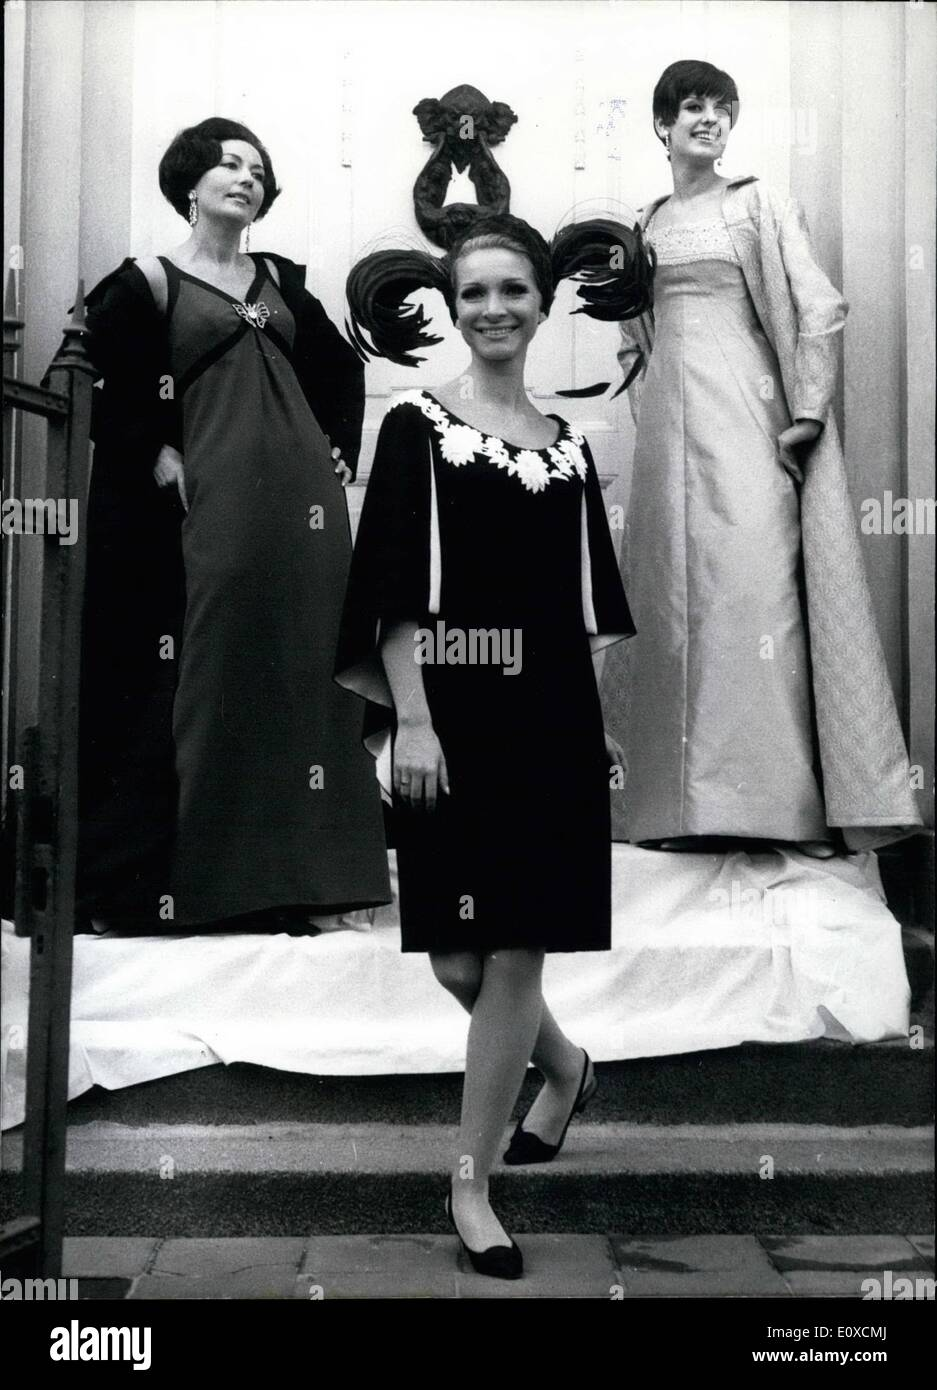 Apr. 04, 1966 - 64th International Berliner Durchreise. In connection with the ''64th International Berliner Durchreise'', an influential fashion show which takes place of April 13th till Aptil 22nd, the Berlin fashion designer Heinz Ostergaard presented his new collection for the autumn winter season 1966-1967. OPS: An evening dress made of turquoise colored, Romain in empire style with embroidery, left, and an evening dress made of silken Alabaster colored Shantung with a cloak of French lace, right. A cocktail hat made of hen feathers and black dress which is decorated with St - Stock Image